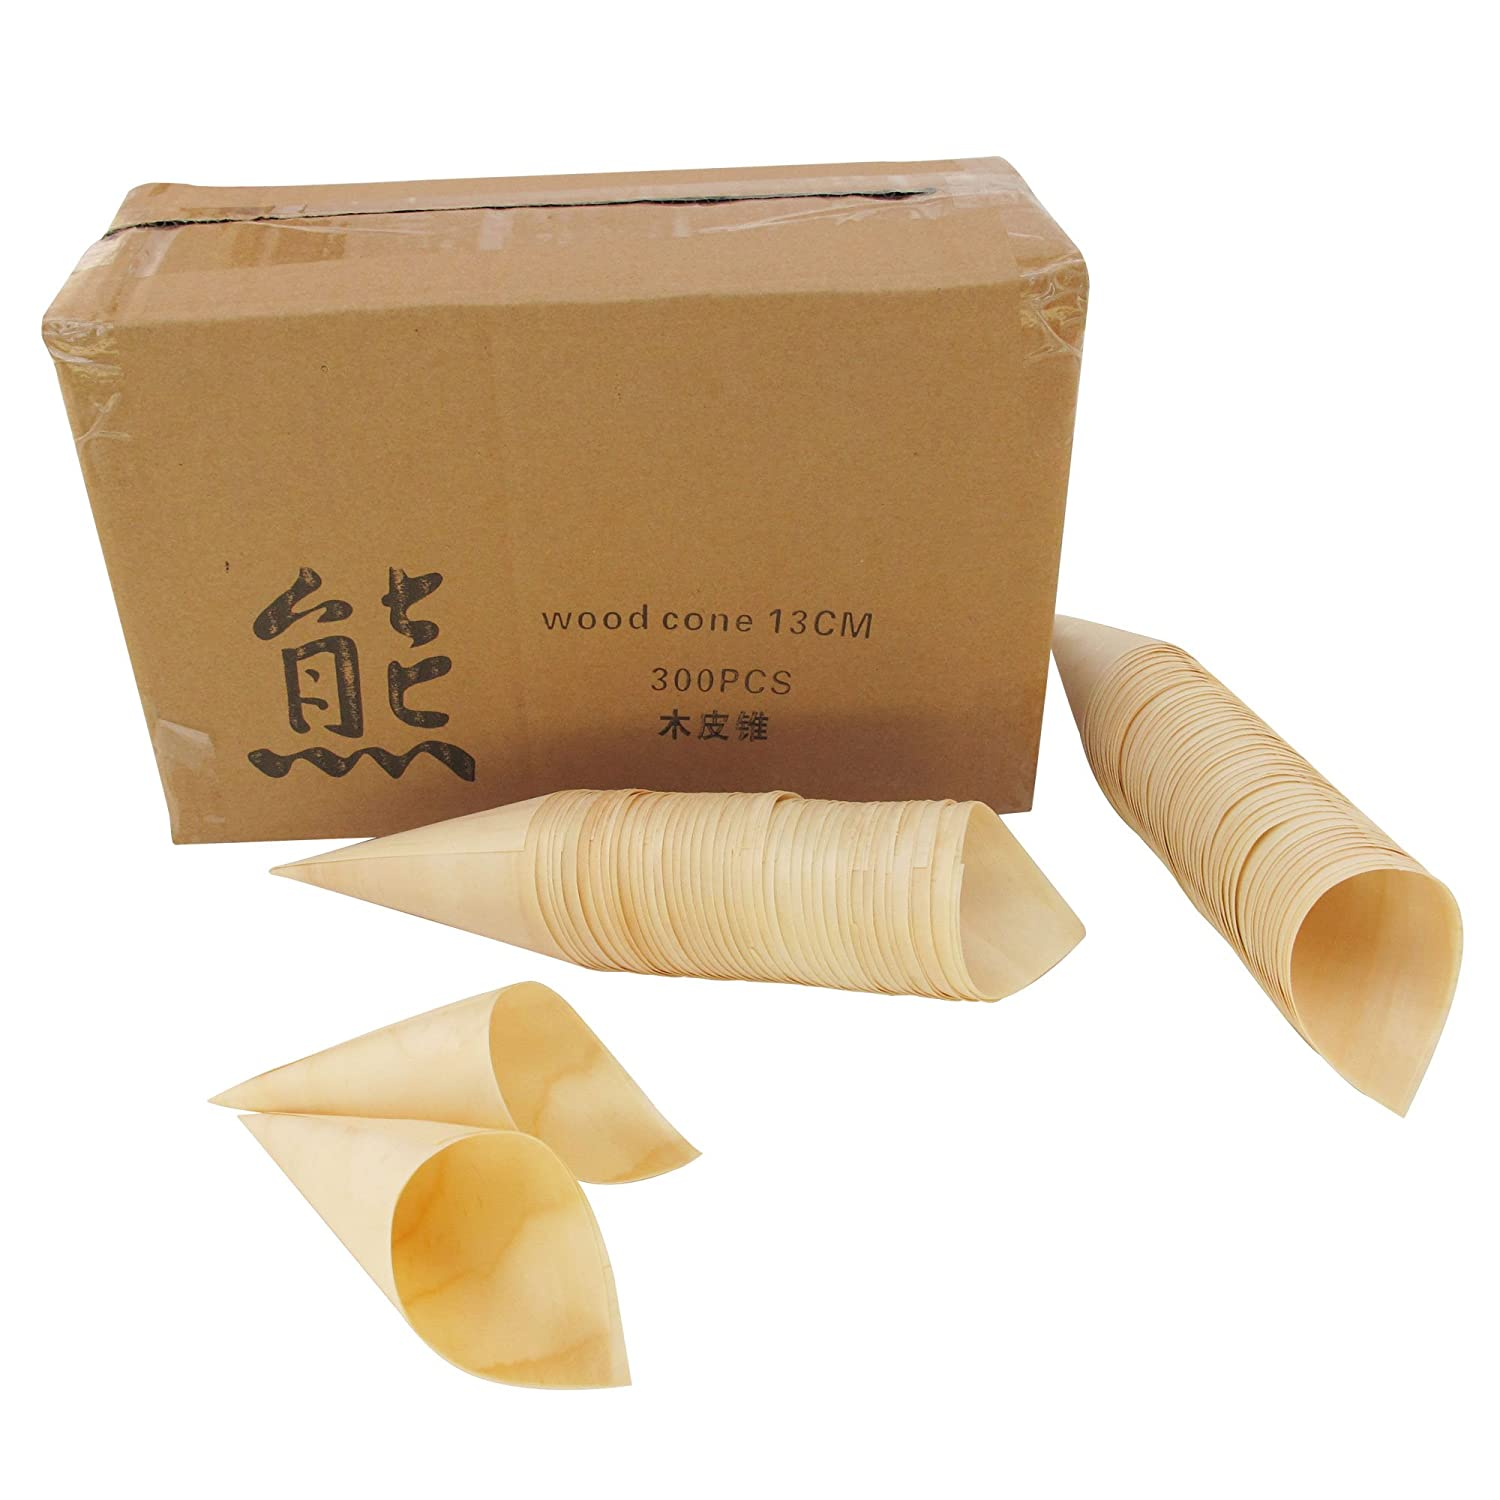 BambooMN Brand 100 Pieces 3.1 Tall x 1.5 Dia Disposable Wood Cones